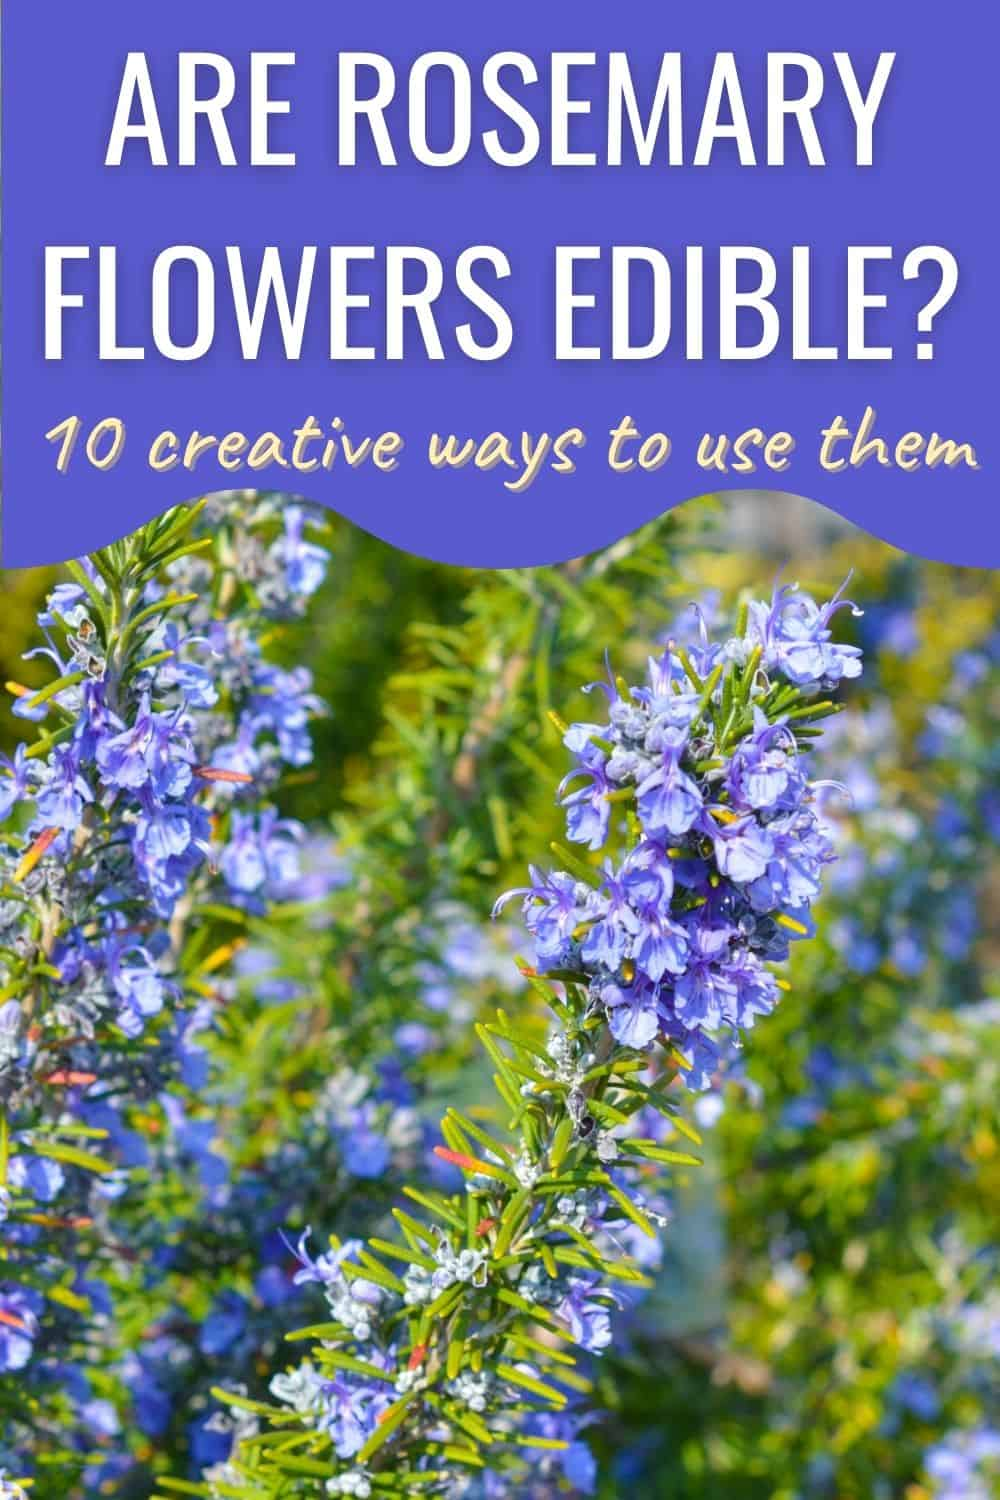 Are rosemary flowers edible? 10 creative ways to use them